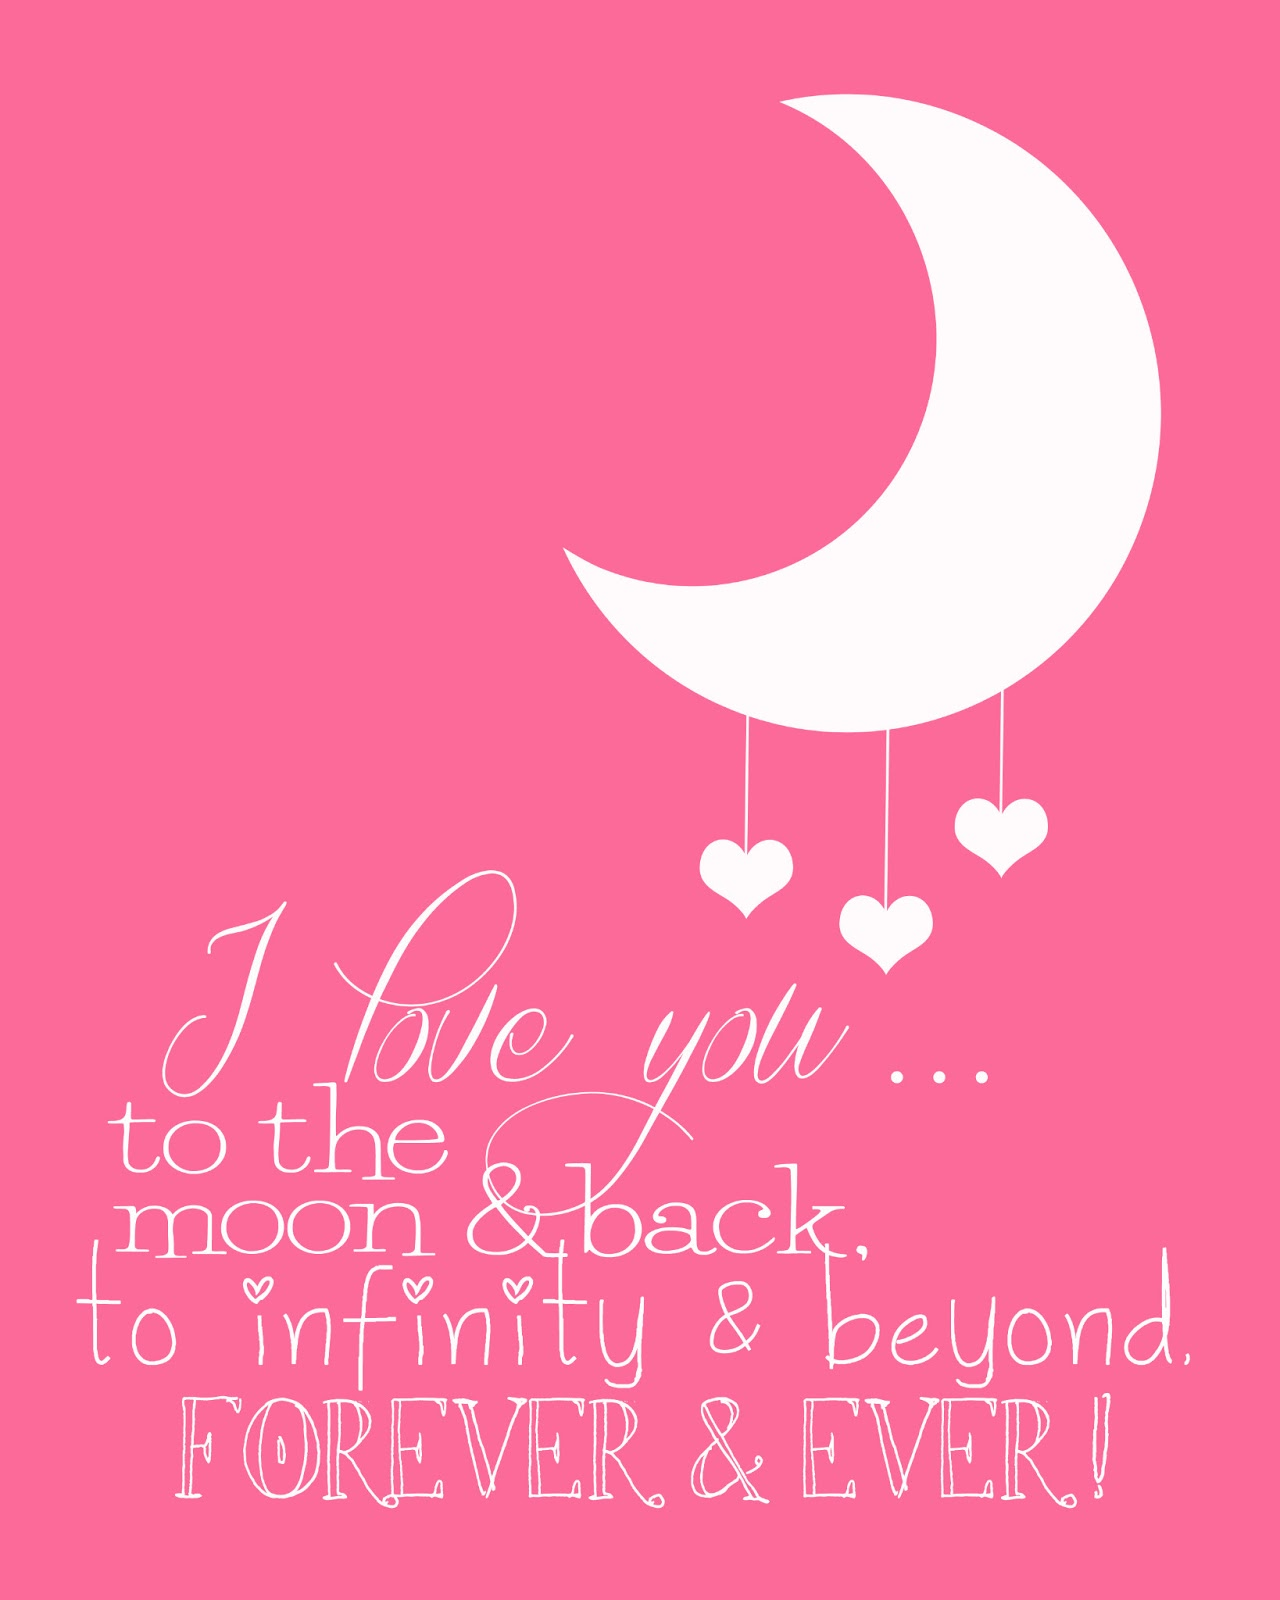 I Love You To The Moon And Back: Funky Polkadot Giraffe: I Love You To The Moon And Back